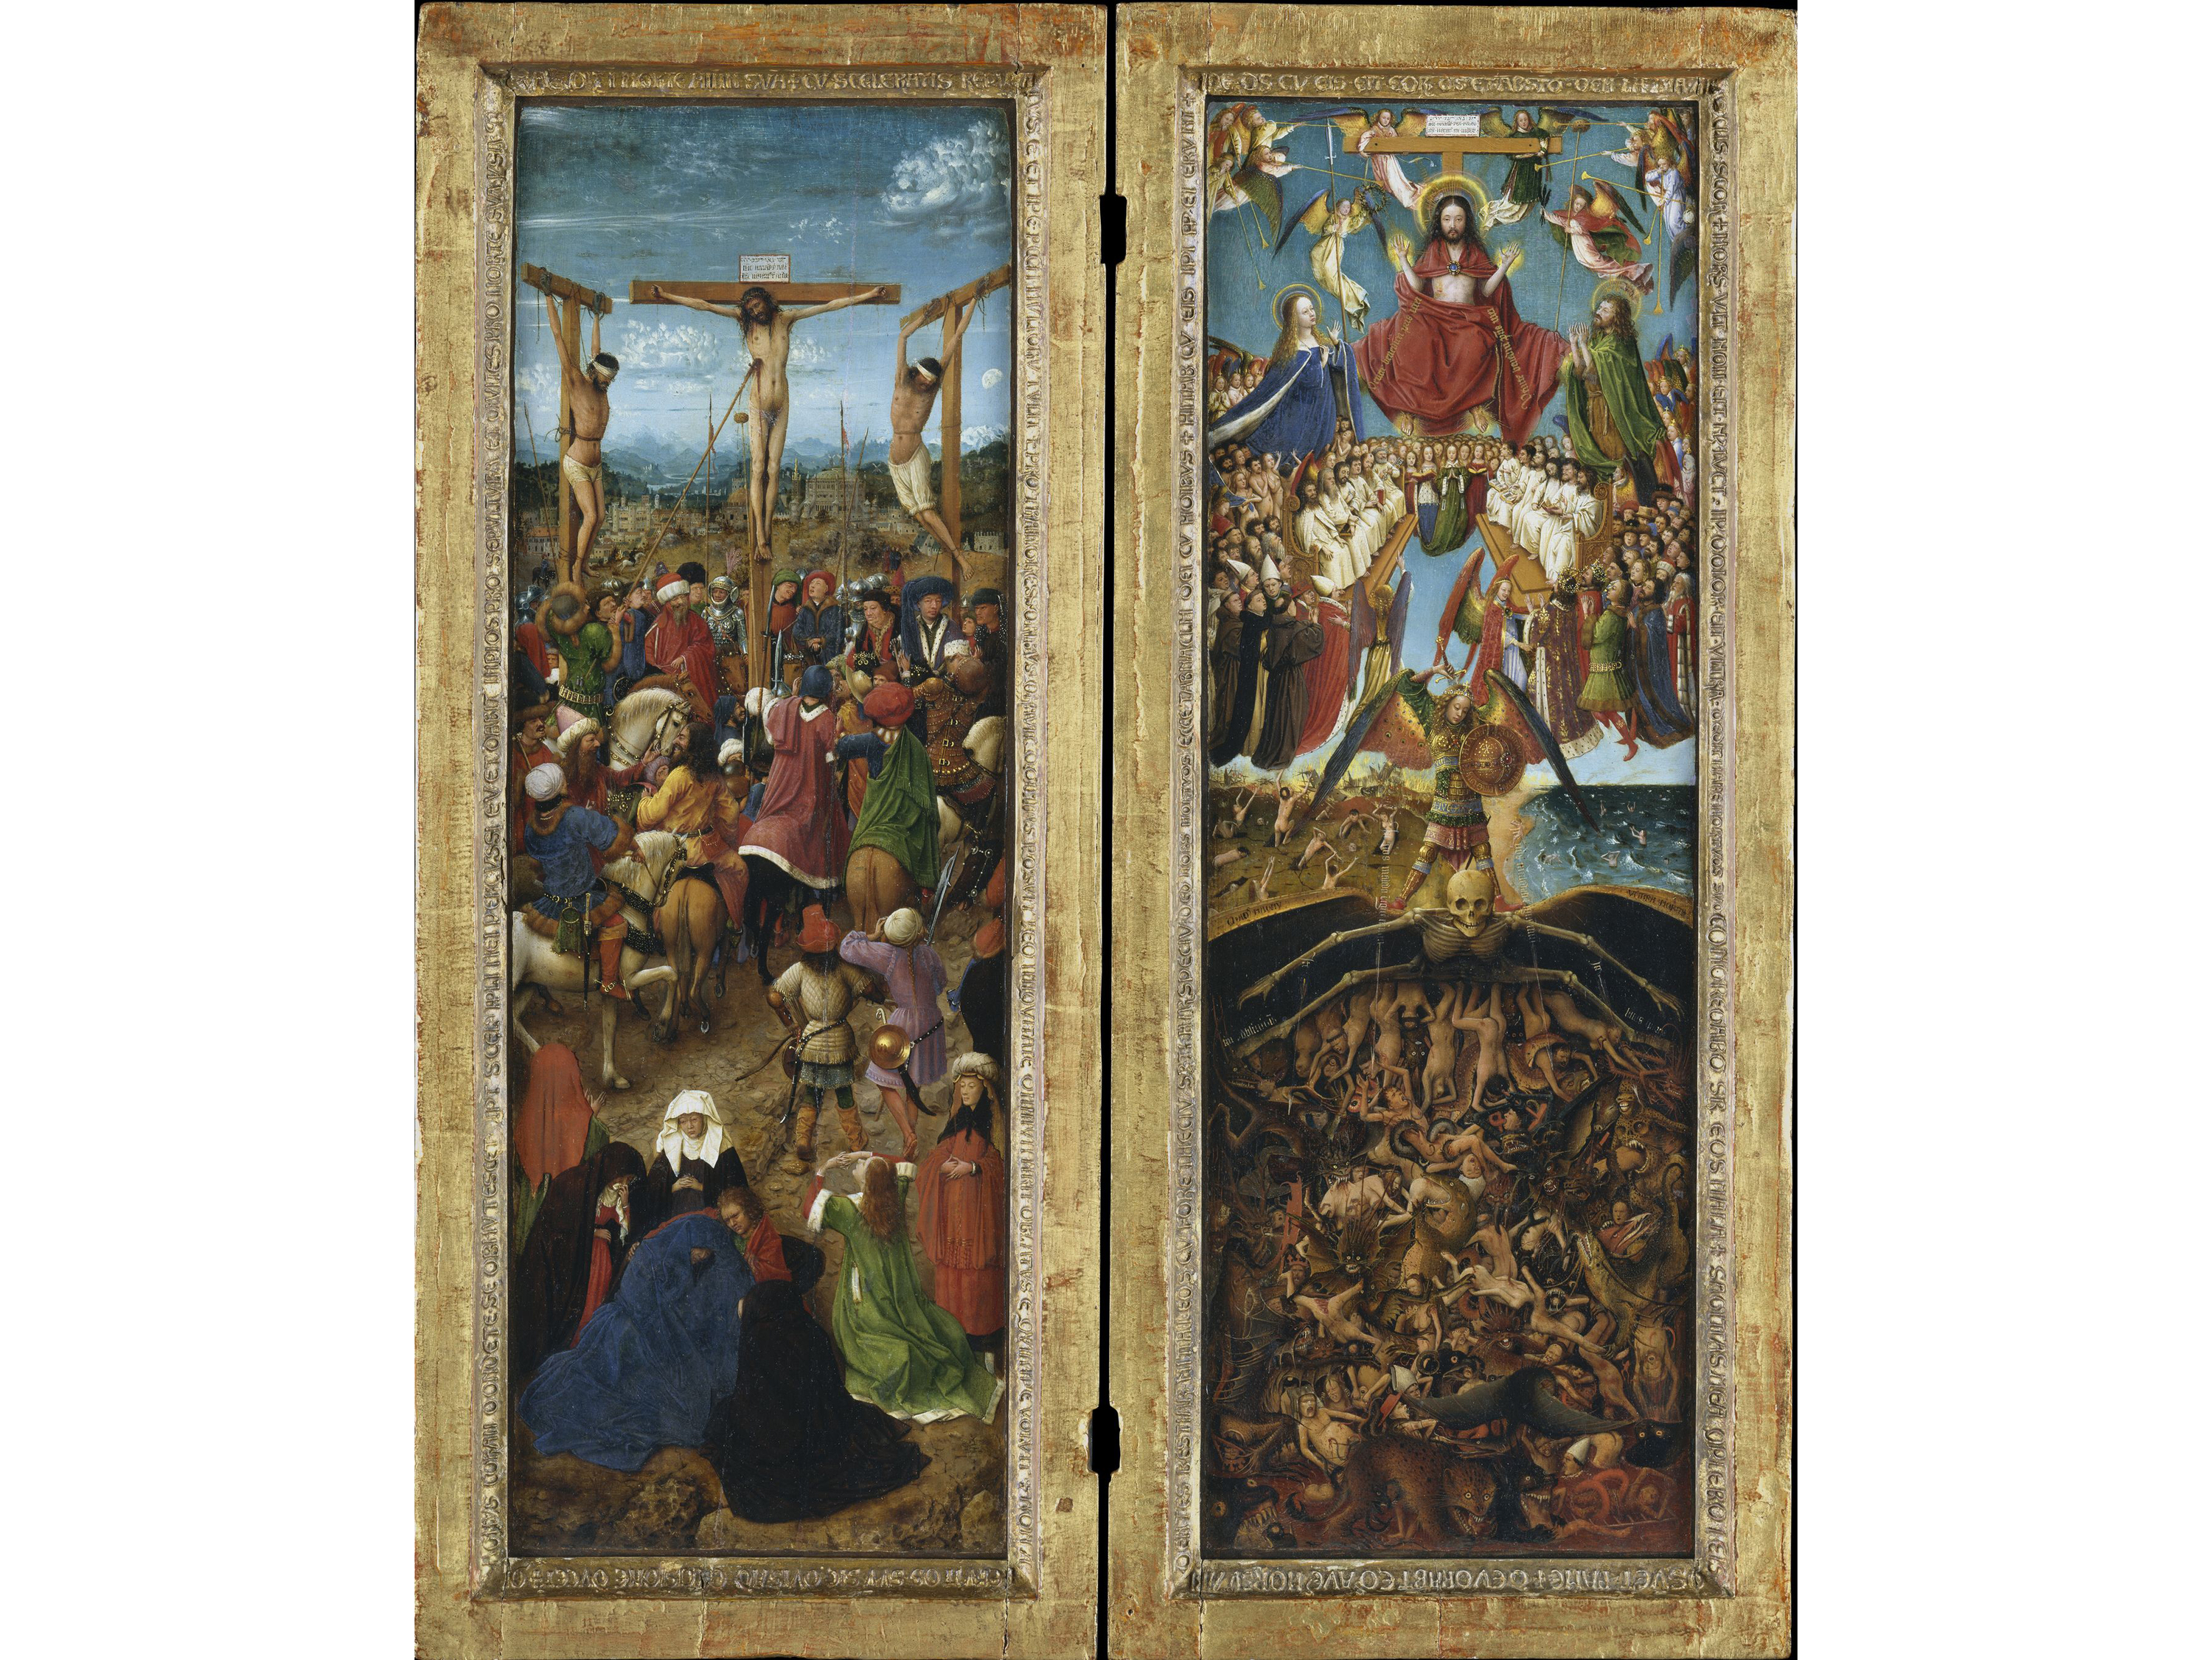 The Crucifixion; the Last Judgment (1430), Jan van Eyck